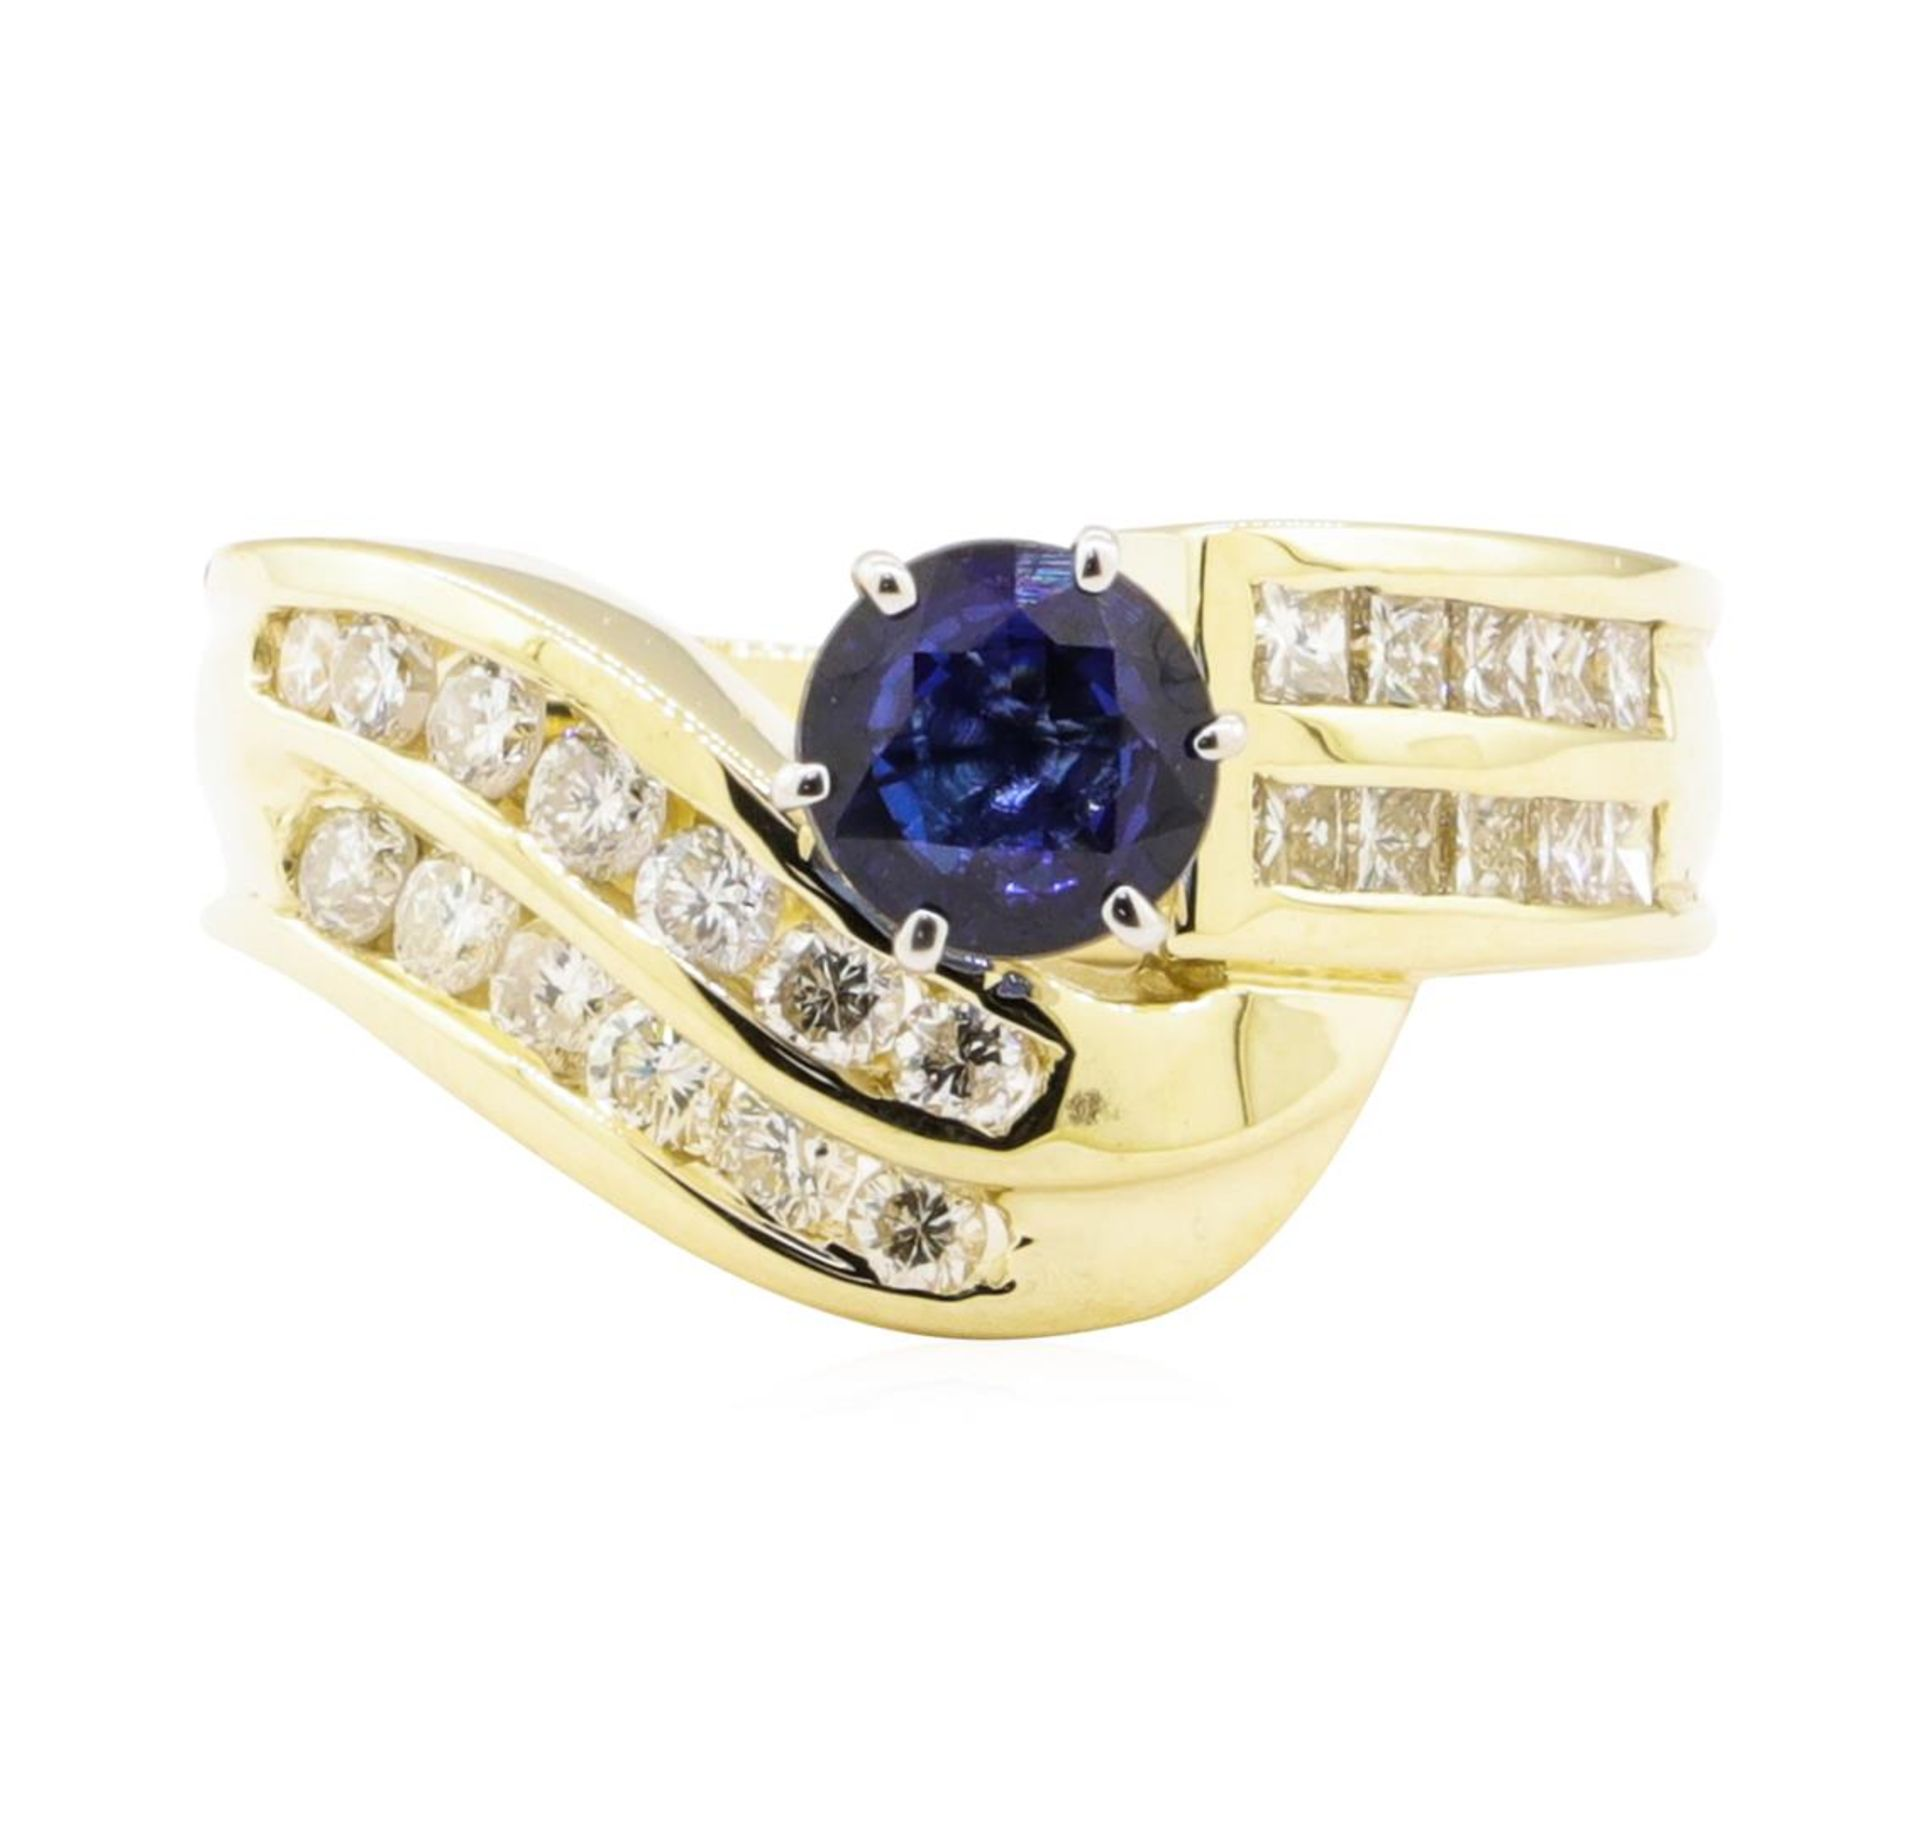 1.78 ctw Blue Sapphire And Diamond Ring - 14KT Yellow Gold - Image 2 of 5